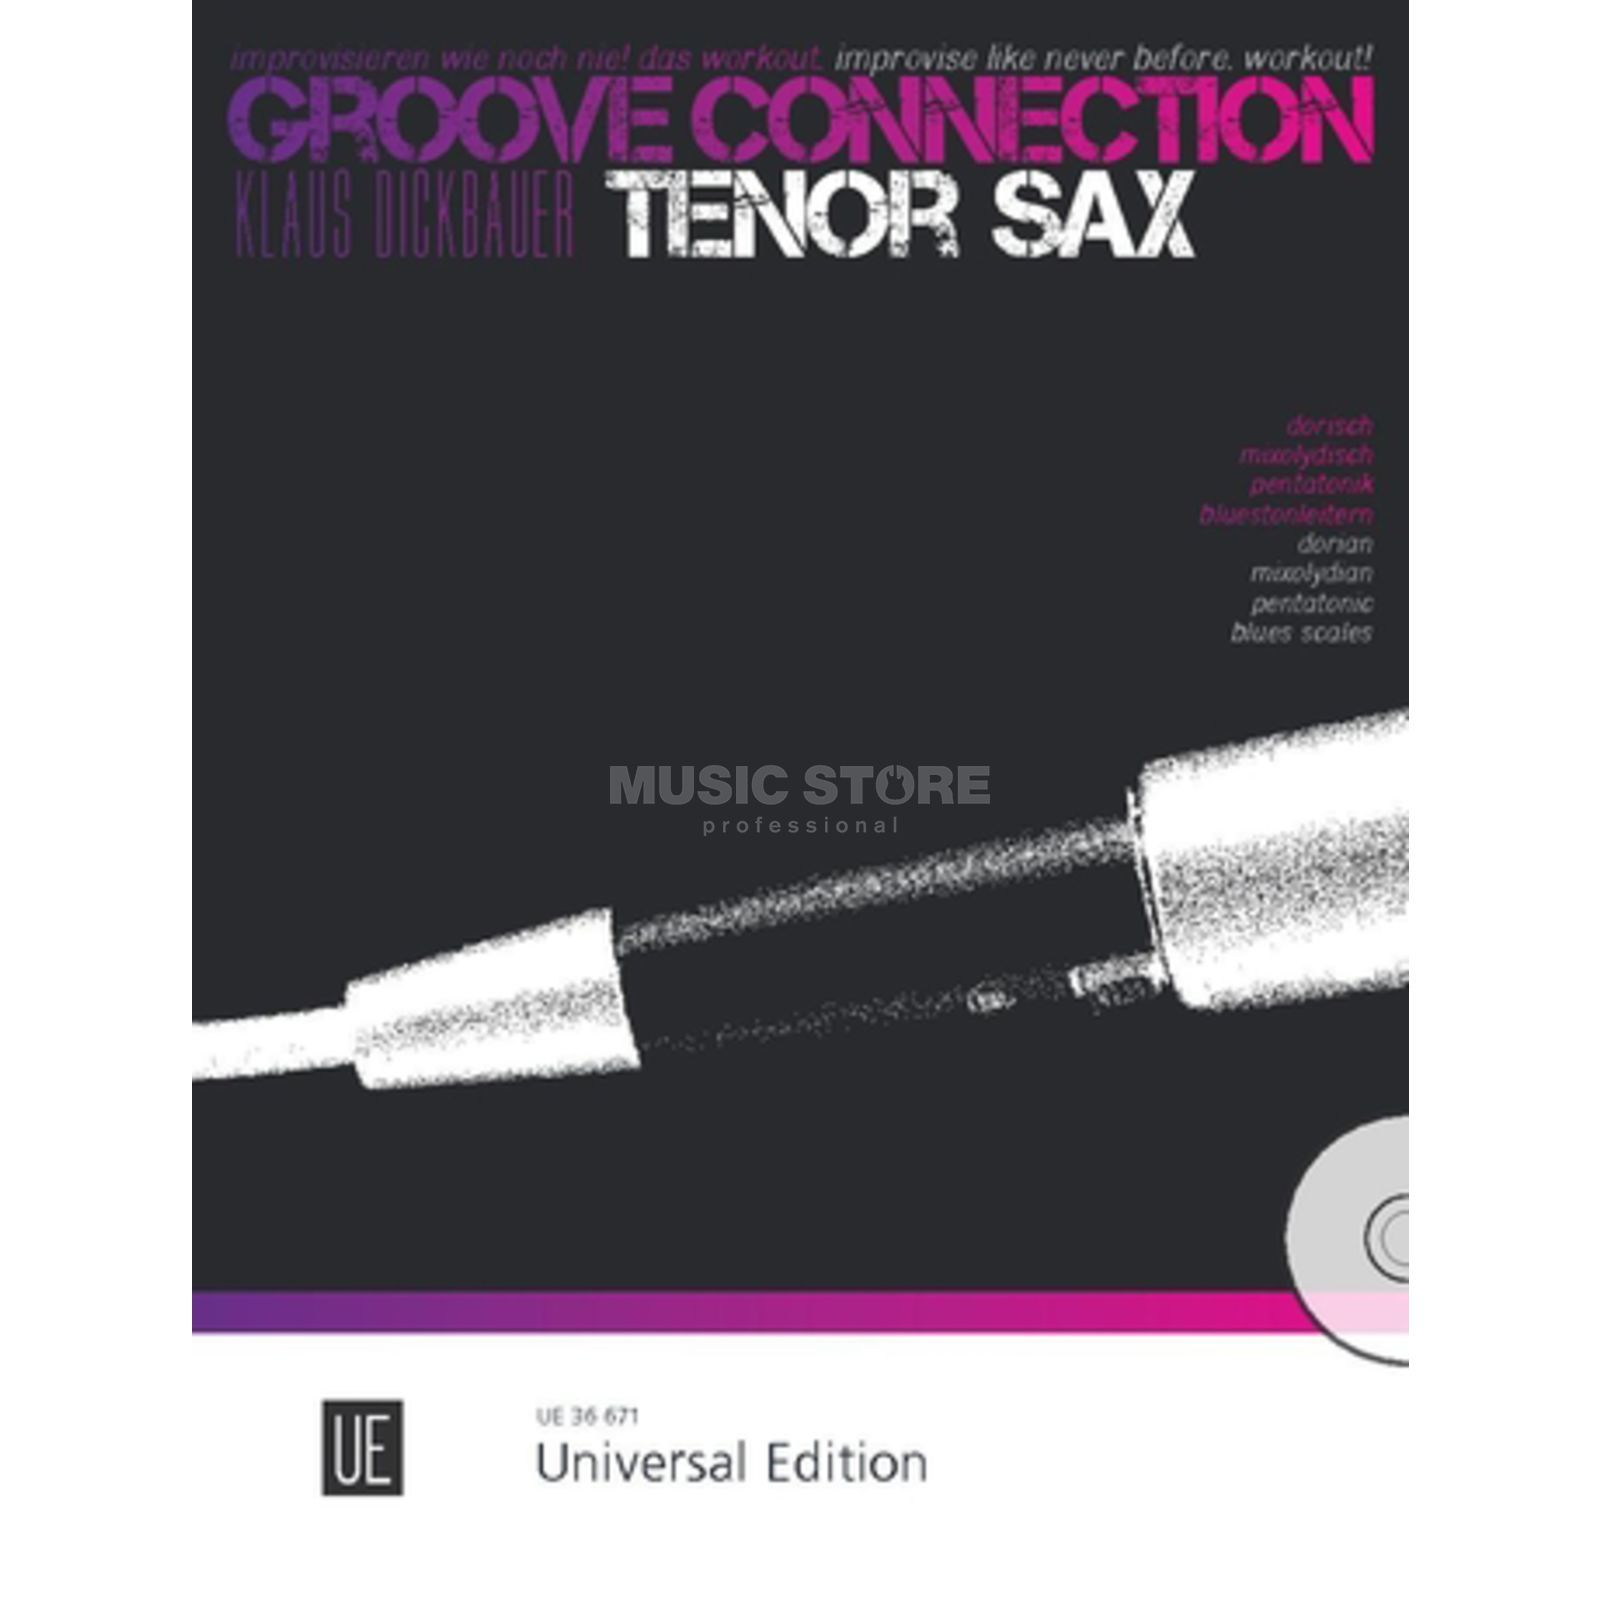 Universal Edition Groove Connection Tenor Saxophone: Dorisch – Mixolydisch – Pentatonik Product Image